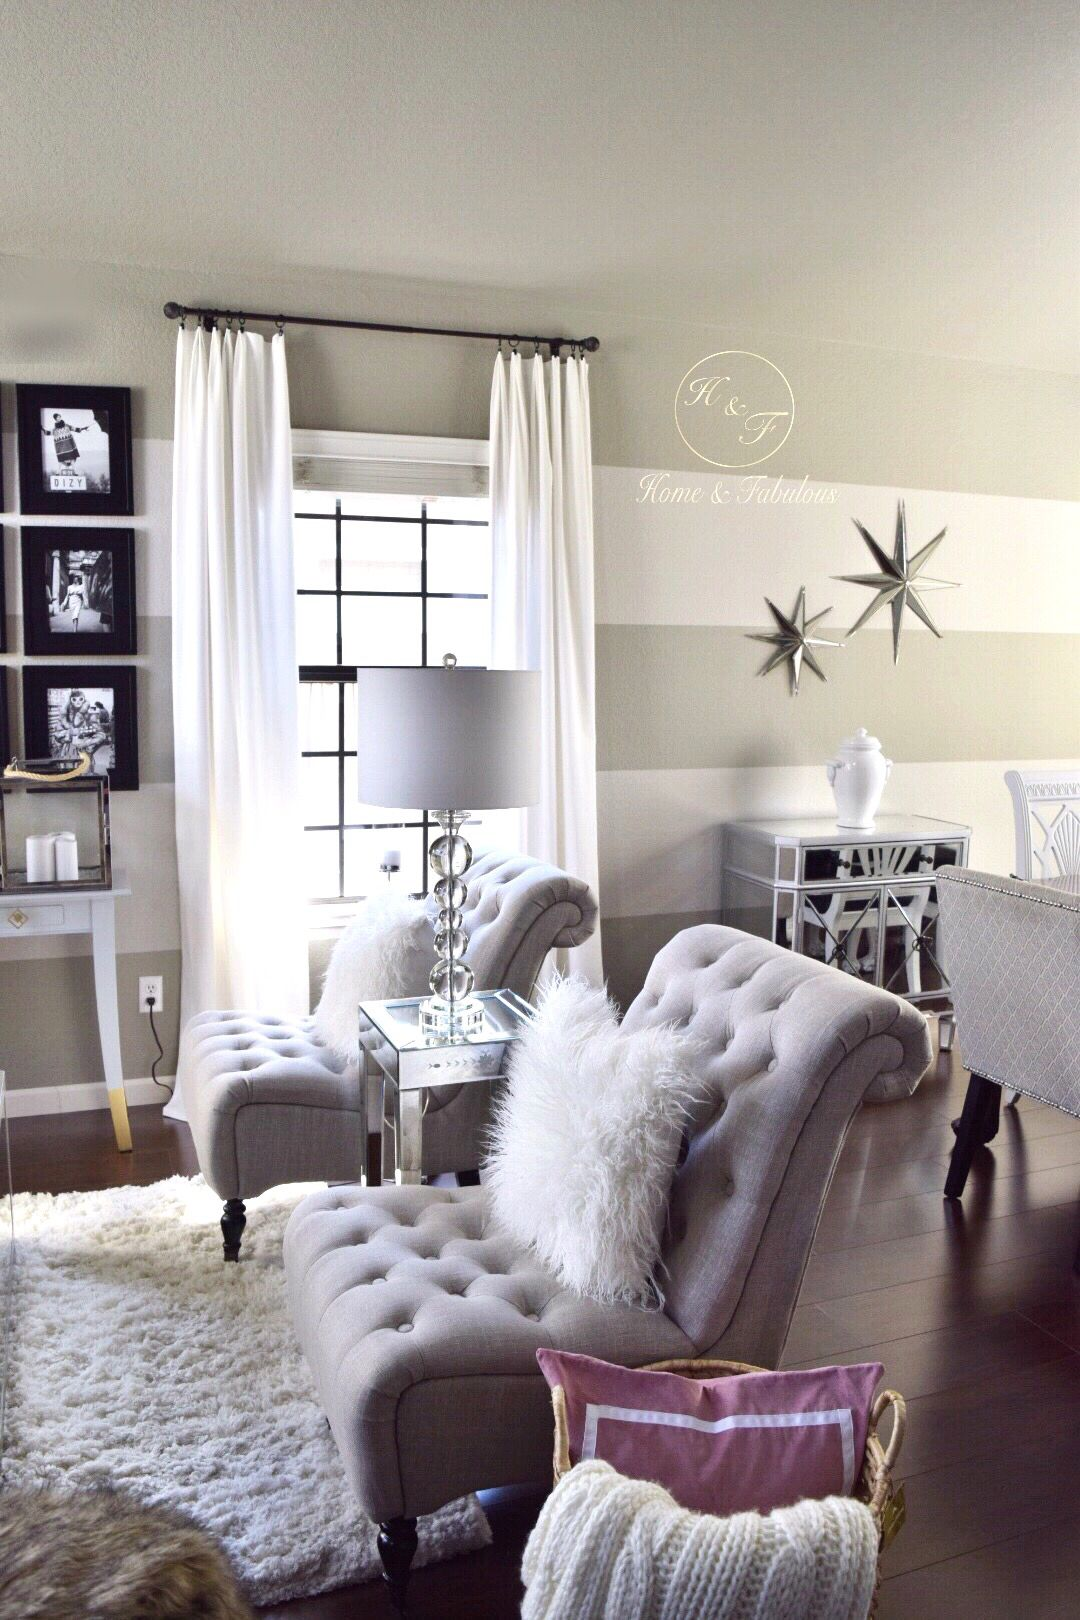 Home and Fabulous | Silver stars, Accent pieces and Star